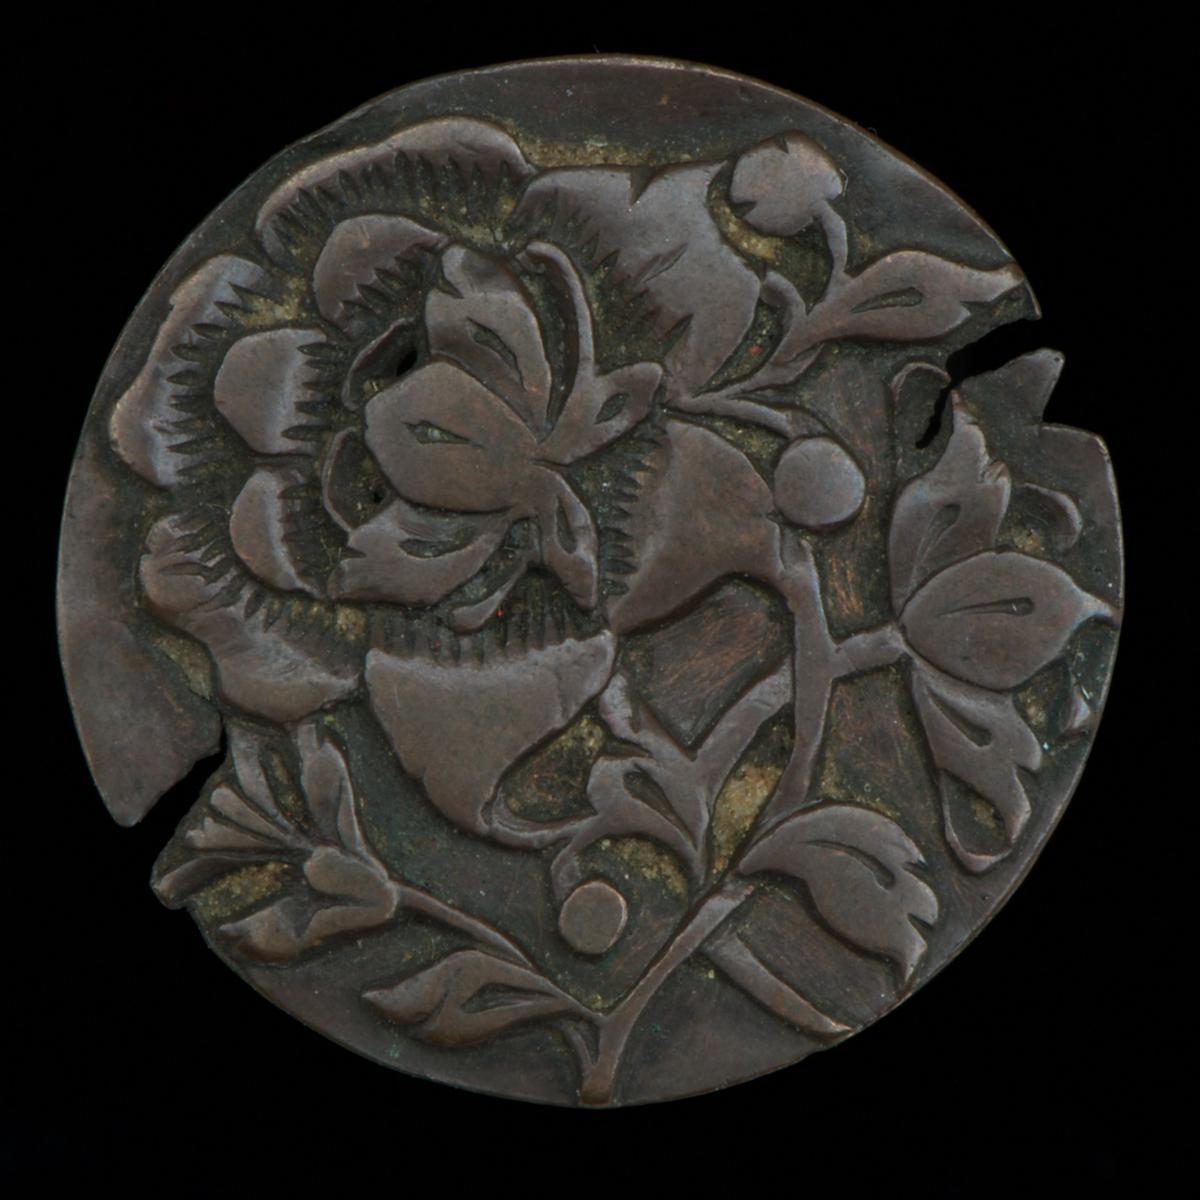 Hand engraved token with floral pattern